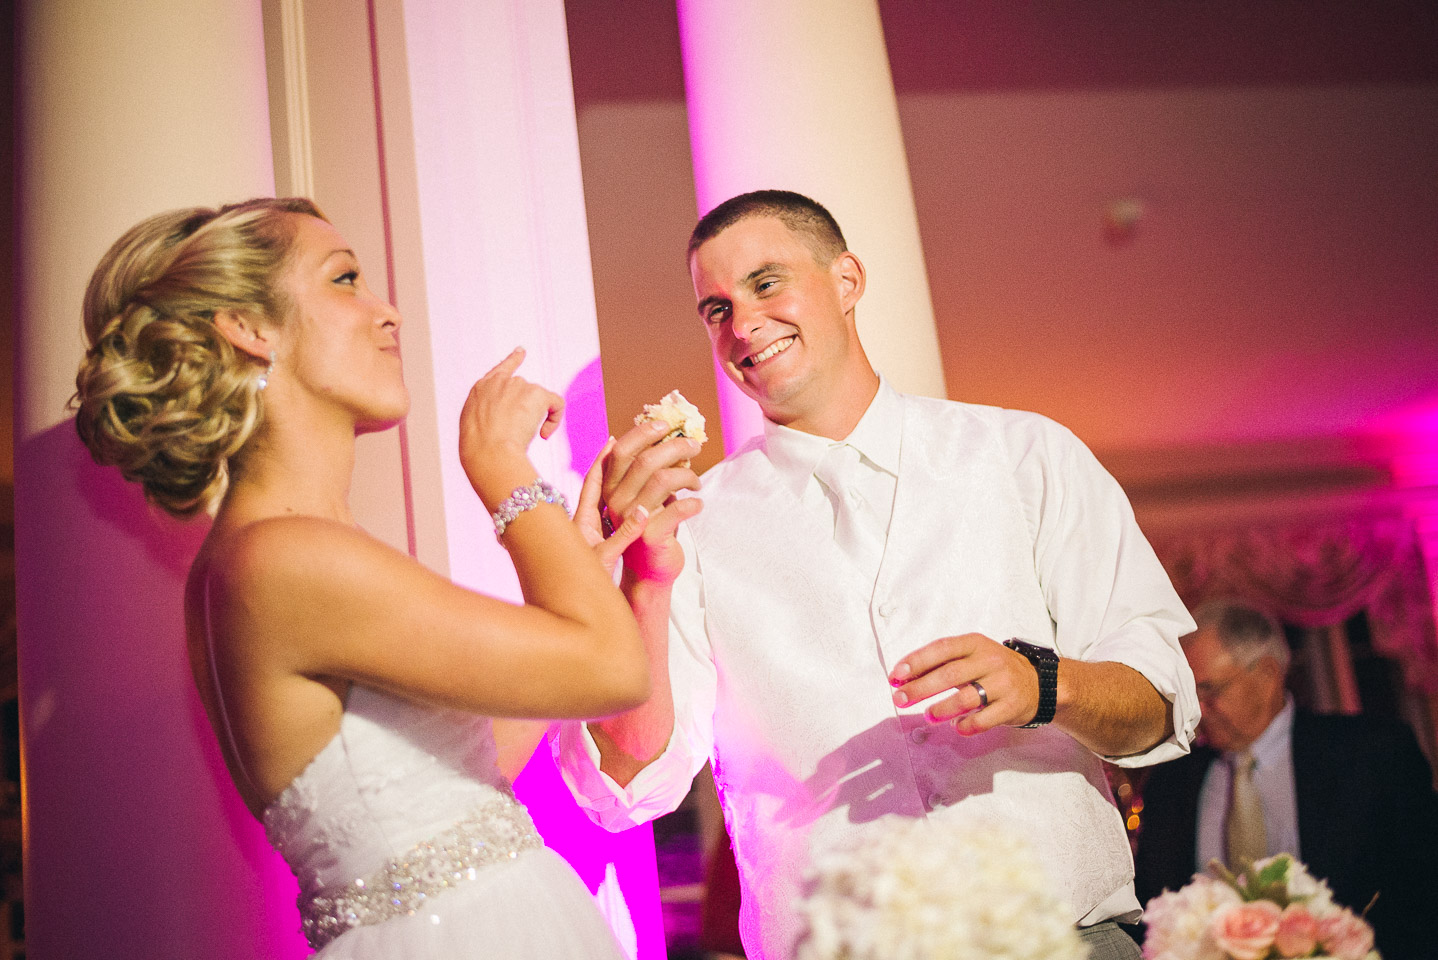 NH Wedding Photography: couple feeding each other